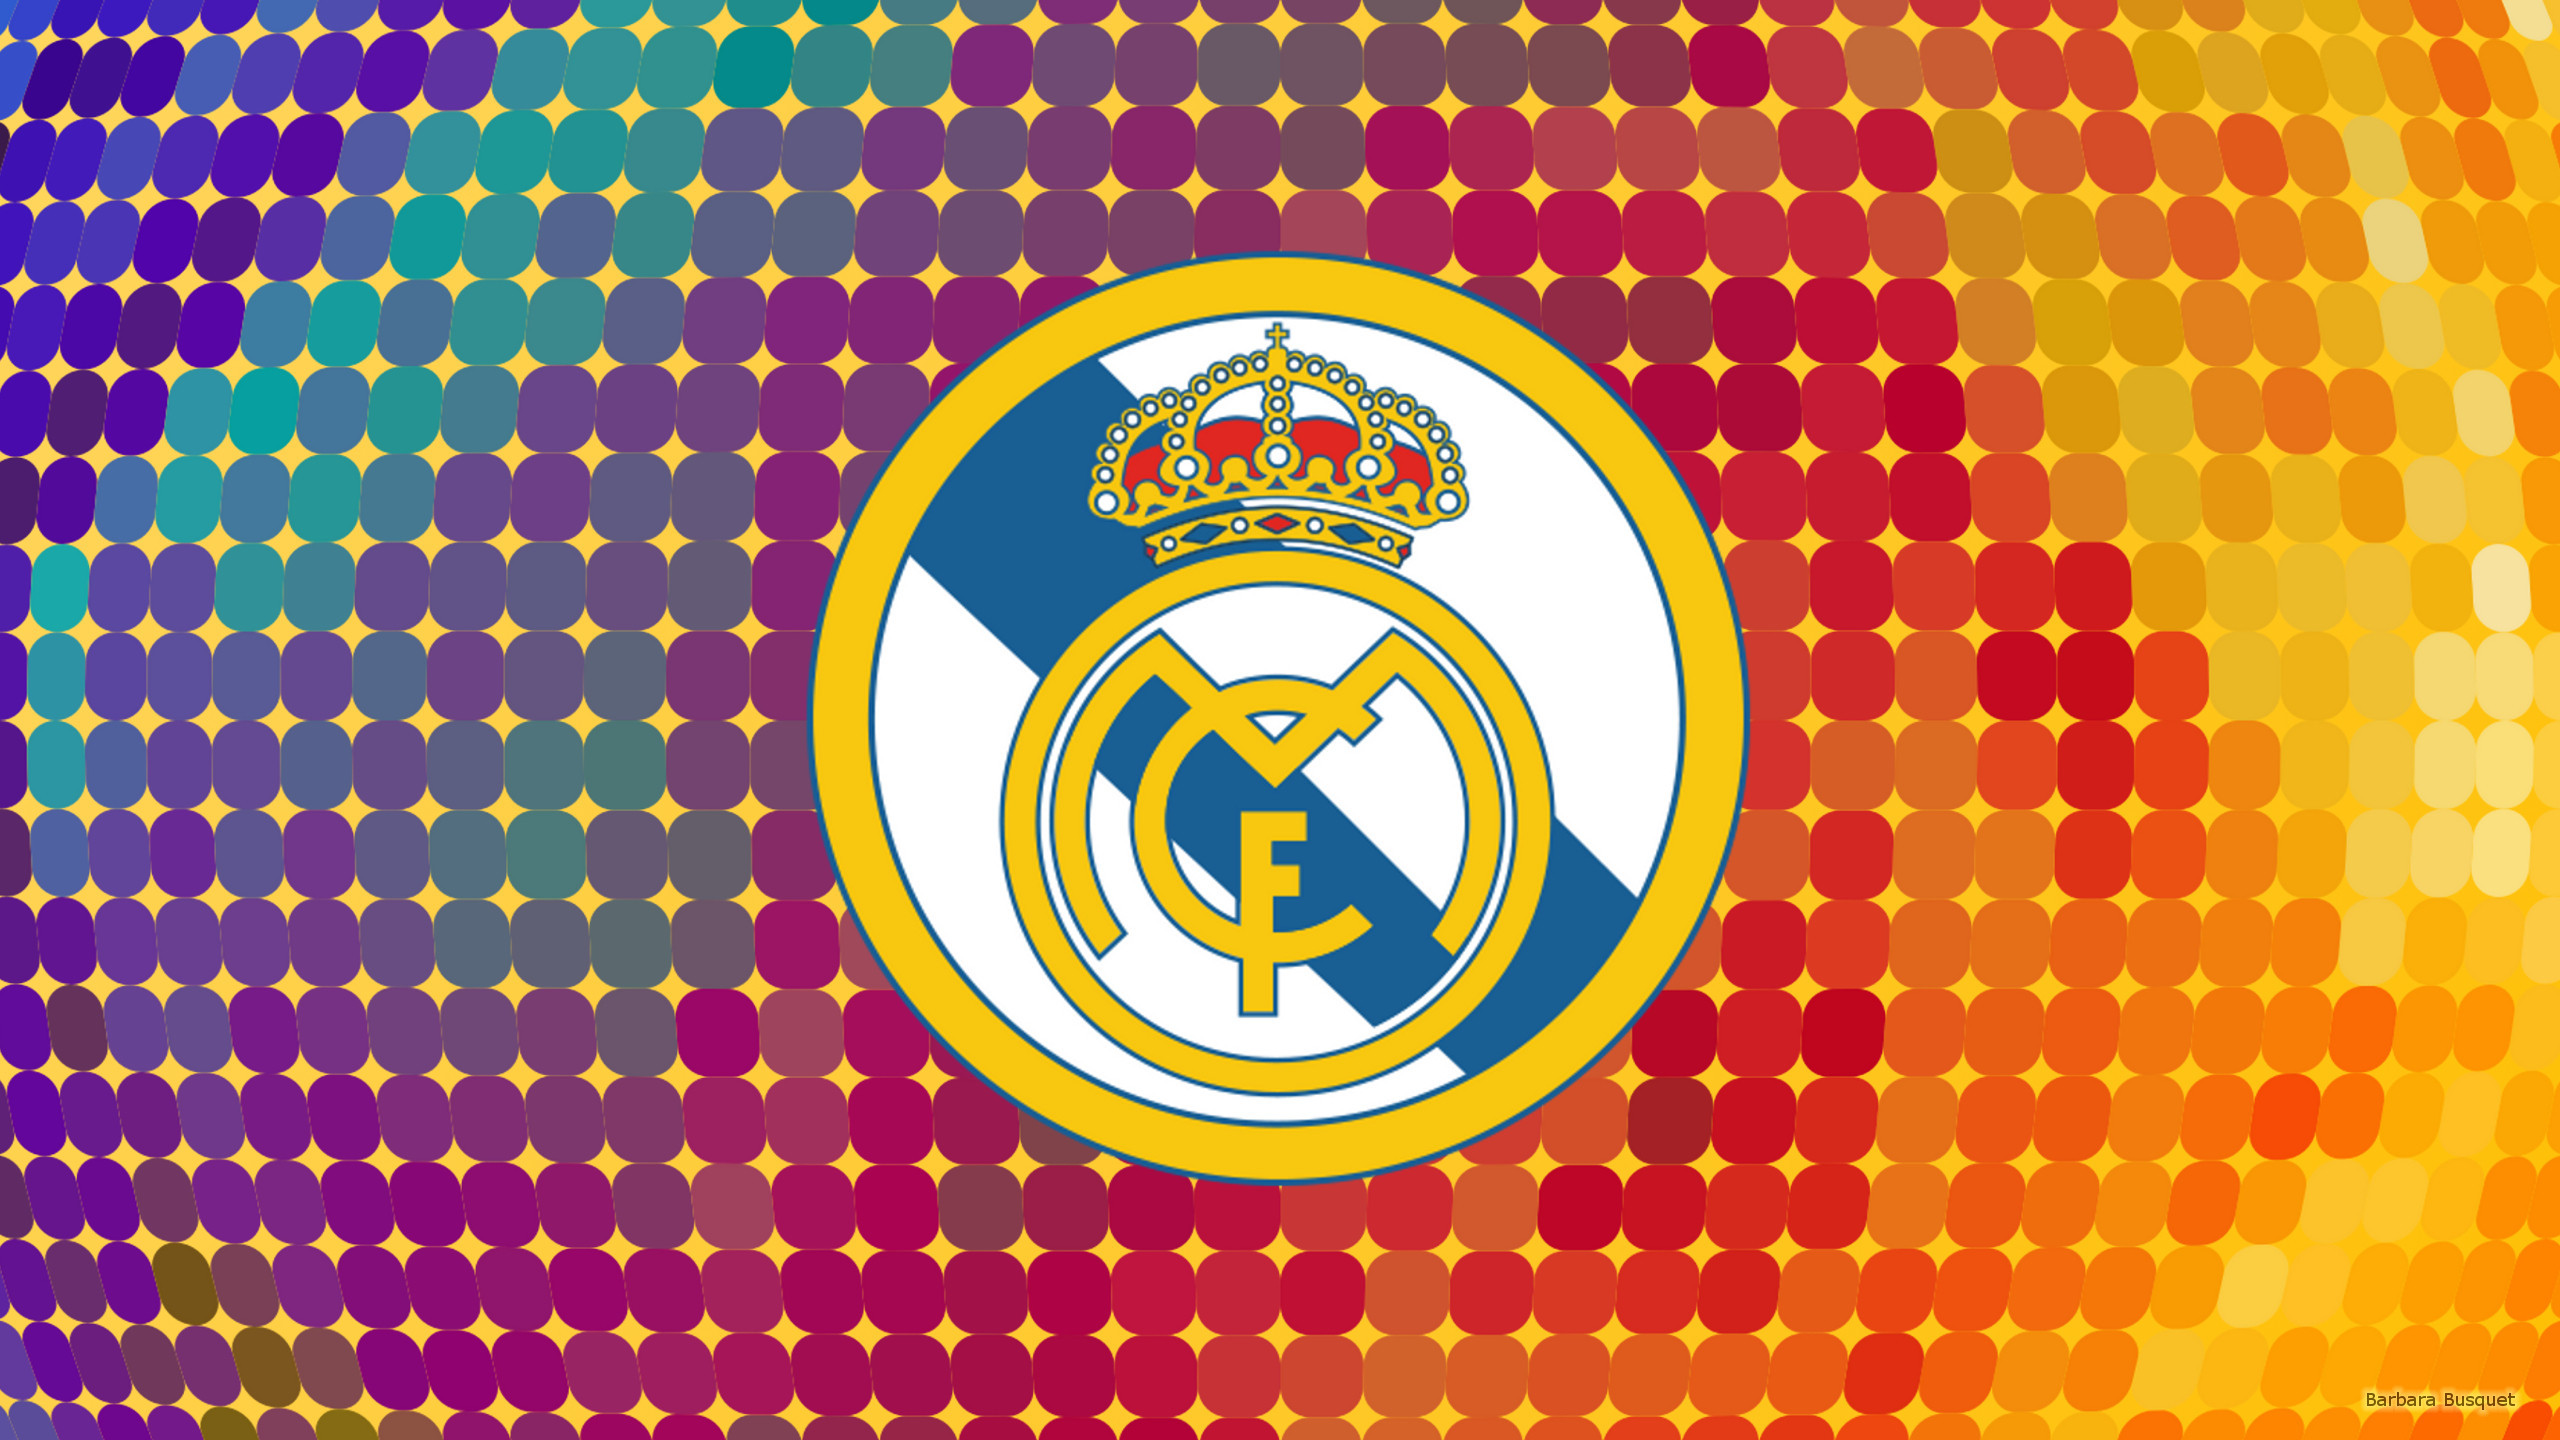 2560x1440 Colorful Real Madrid logo wallpaper